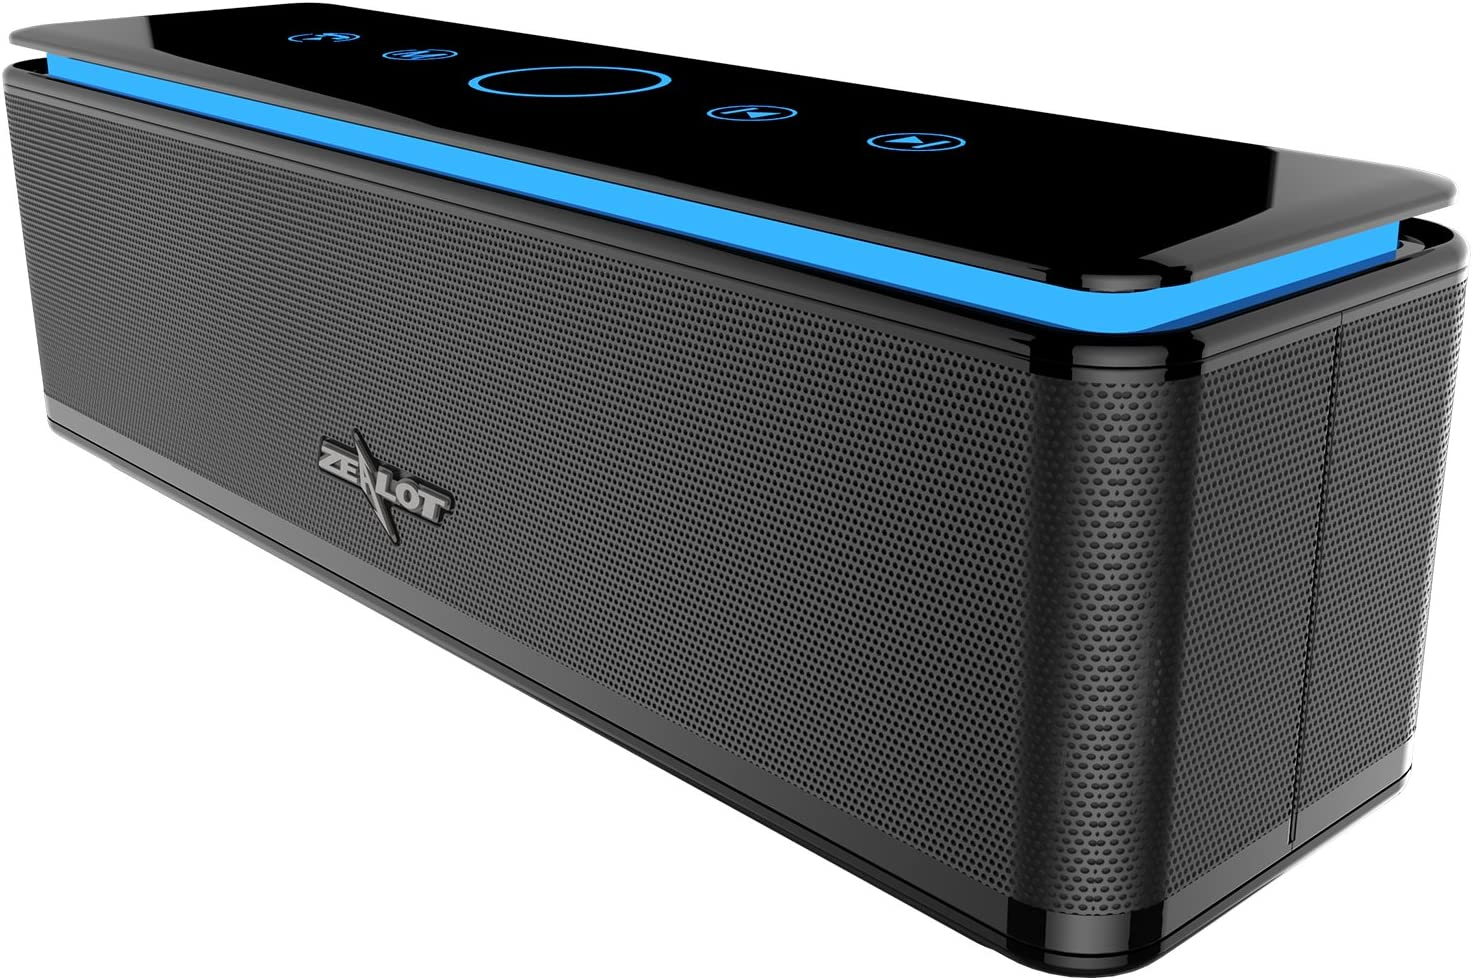 [Upgraded] ZEALOT S7 Pro Portable Bluetooth Speakers Wireless Loud Clear Stereo Sound BT 5.0, IPX5 Water Resistant,Enhanced Bass 26W Power Outdoor Speaker with 10000mAh Battery, 24-Hour Playtime